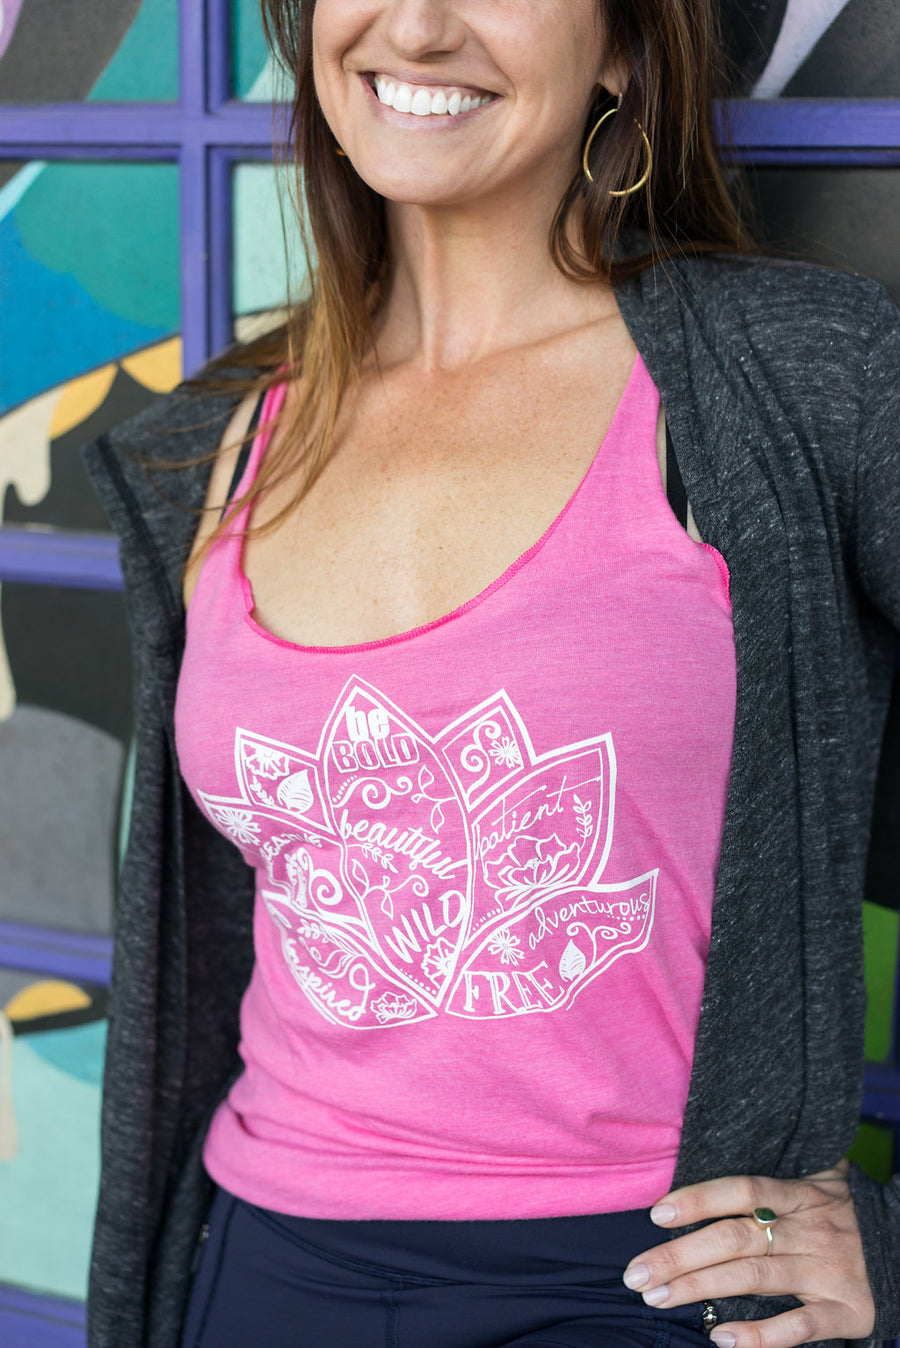 Inspirational Lotus Flower Tank - Inspired by Stephanie Rose